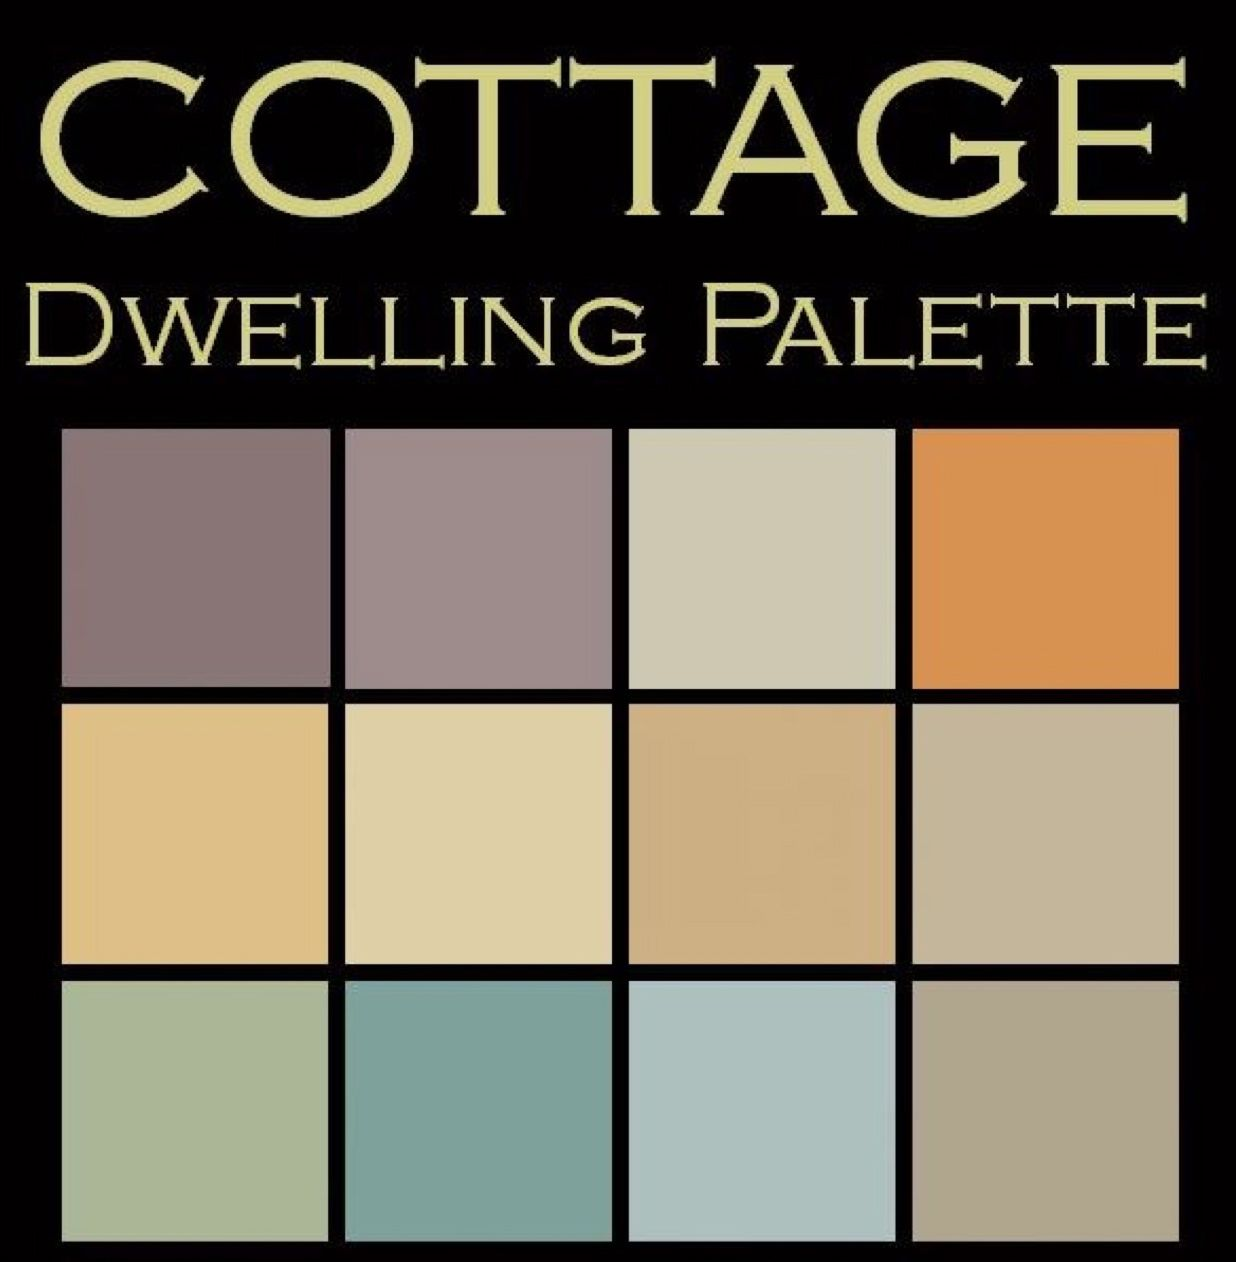 Cabin Paint Colors Interior: Cottage Paint Colors, Benjamin